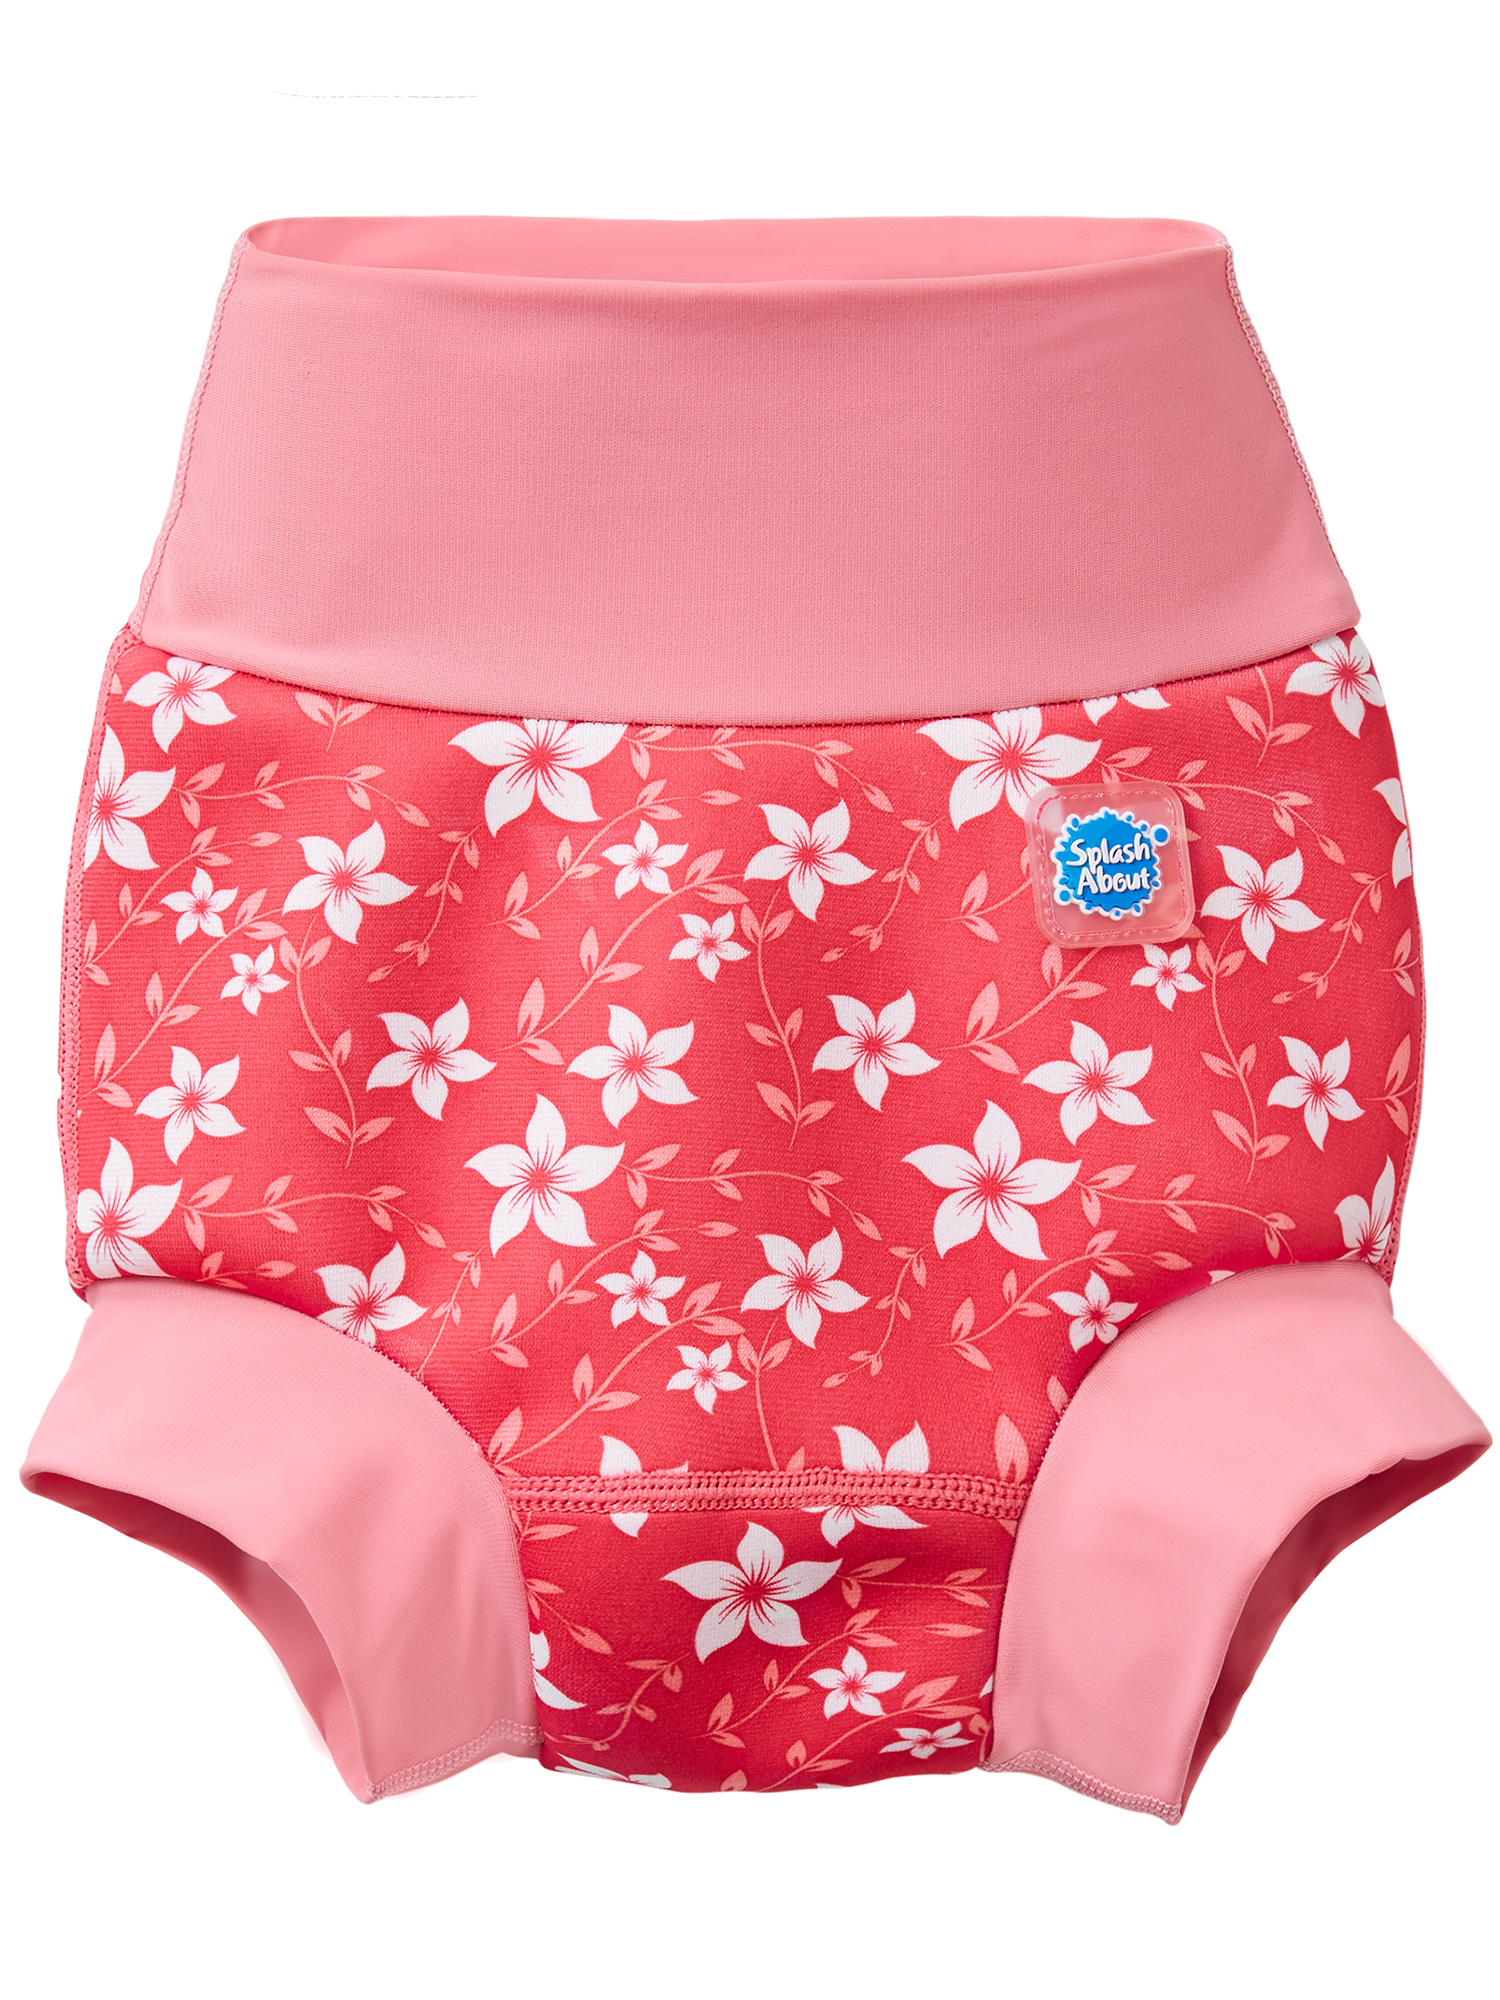 Splash About New Improved Happy Nappy Swim Diaper Pink Blossom X Large 12-24 Months